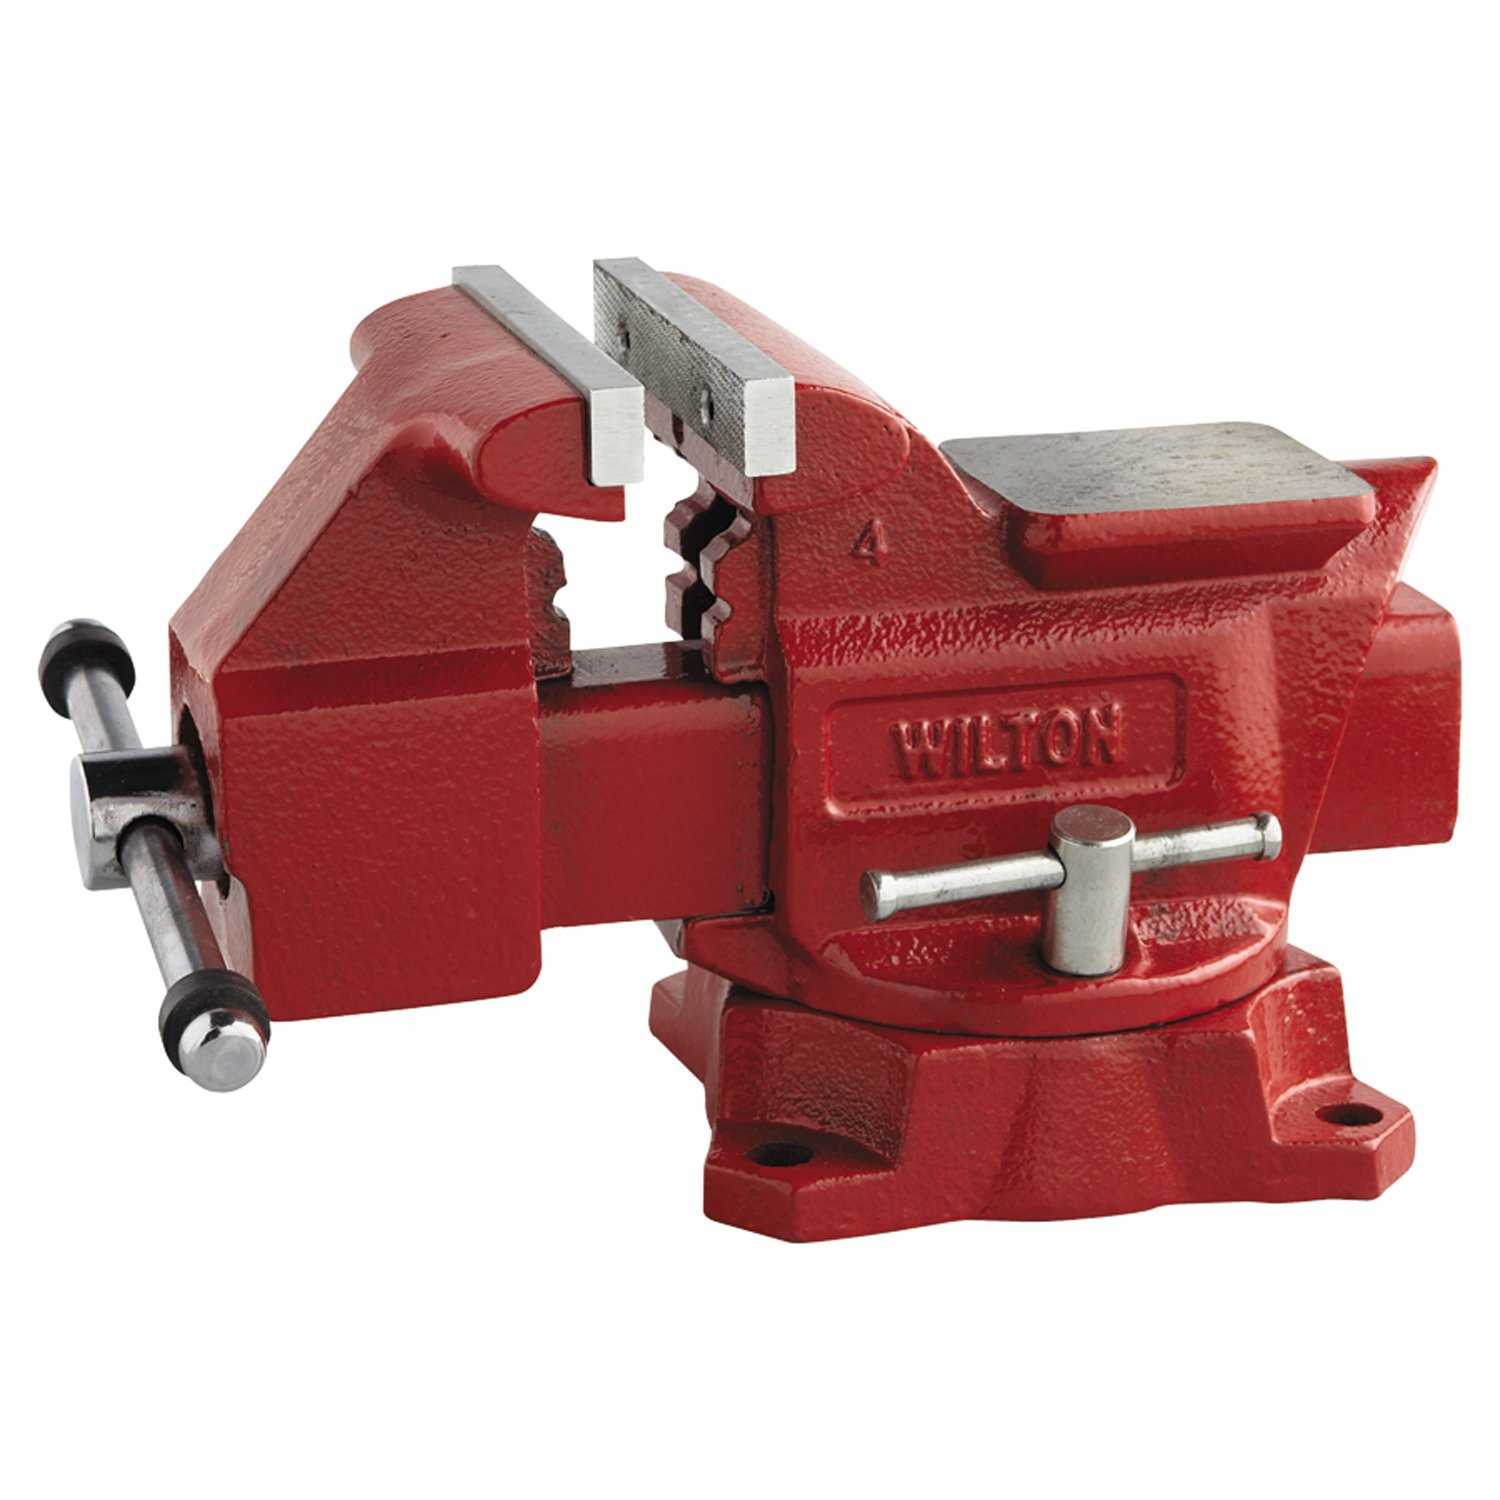 Wilton 11126 674 4-1/2-Inch Jaw Width by 4-Inch Opening Utility Workshop Vise